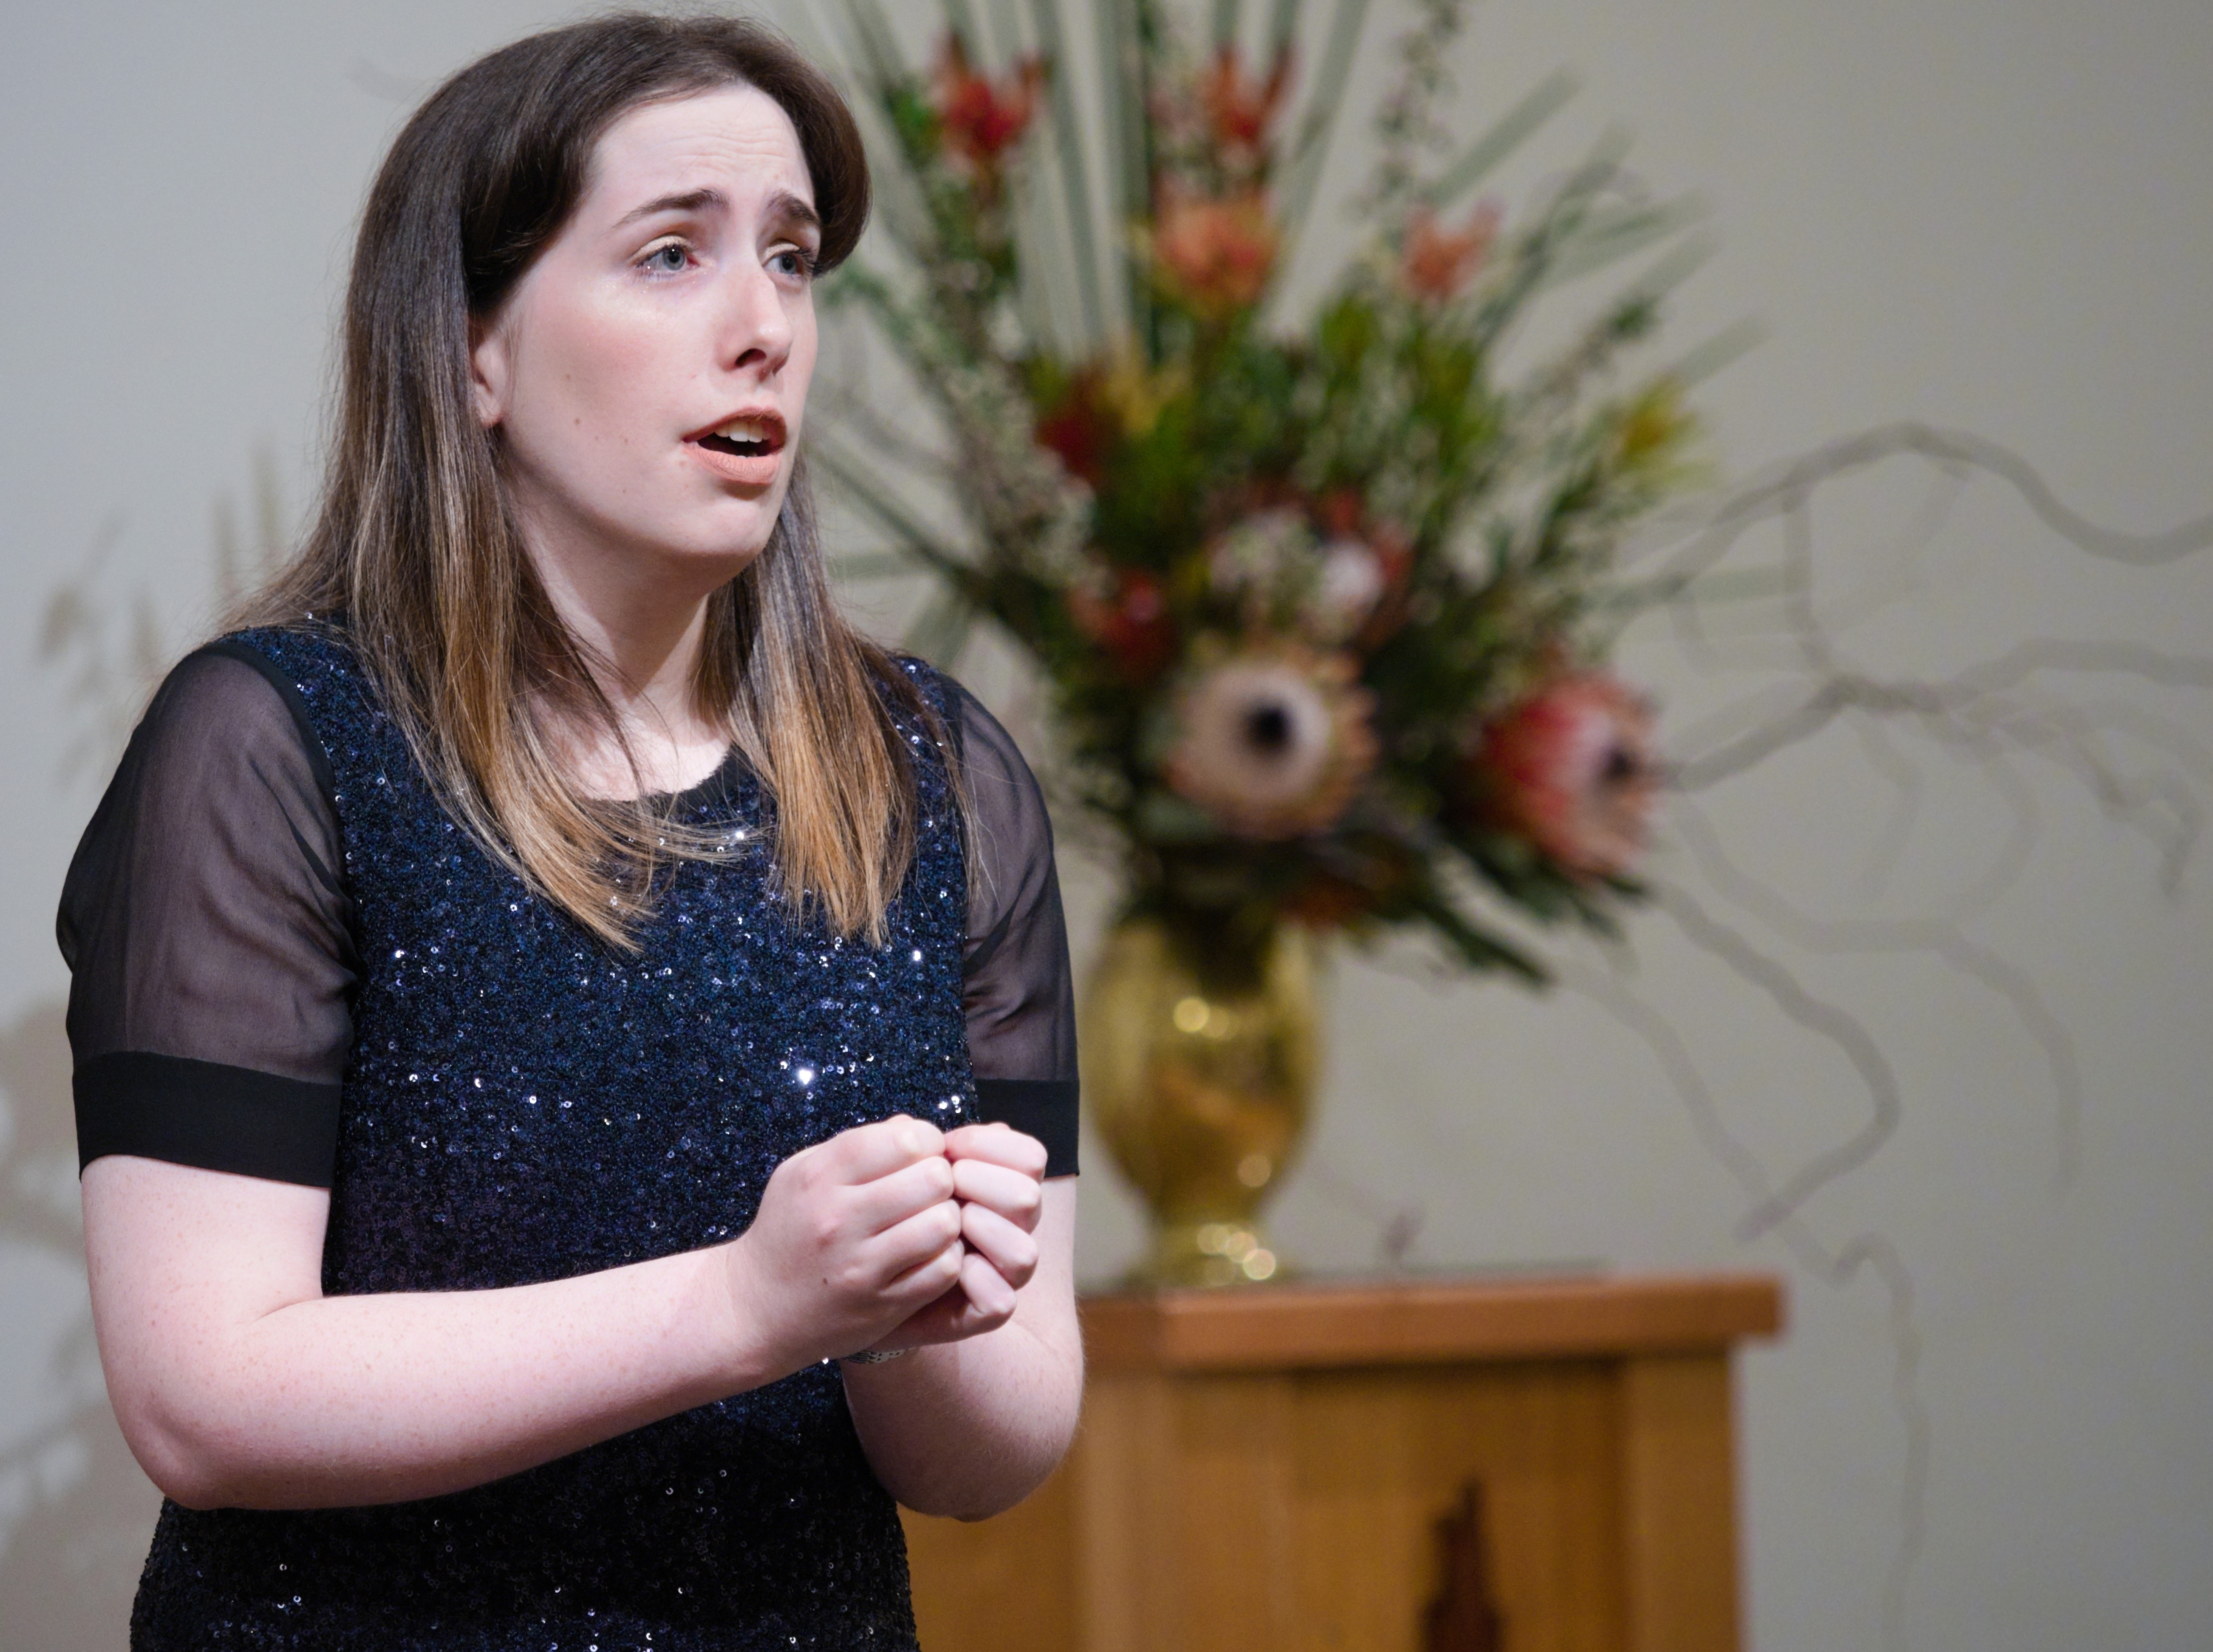 WGE Classical Vocal Catherine Hoffman Performs